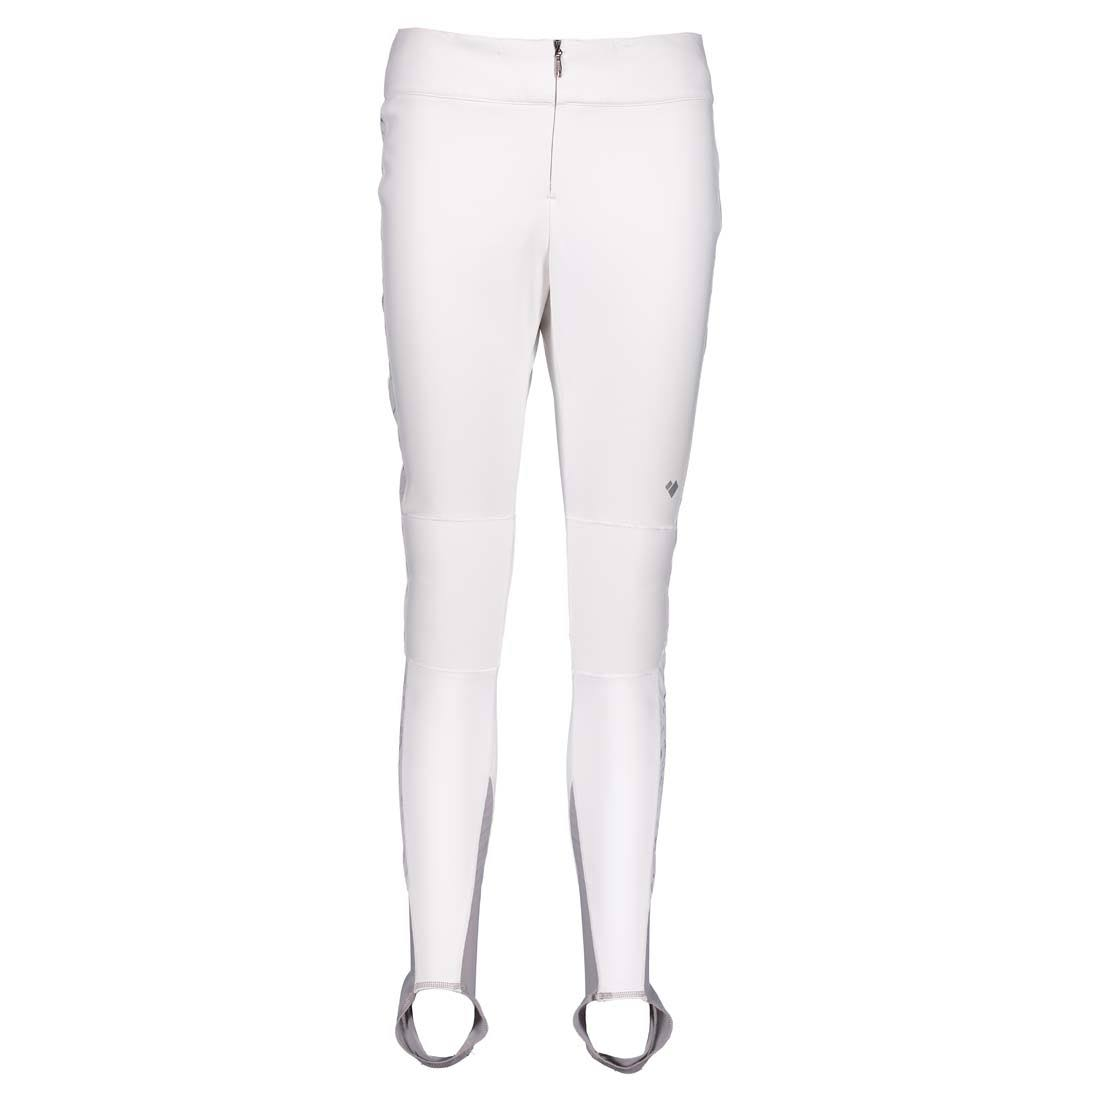 Obermeyer Women's Jinks ITB Pant